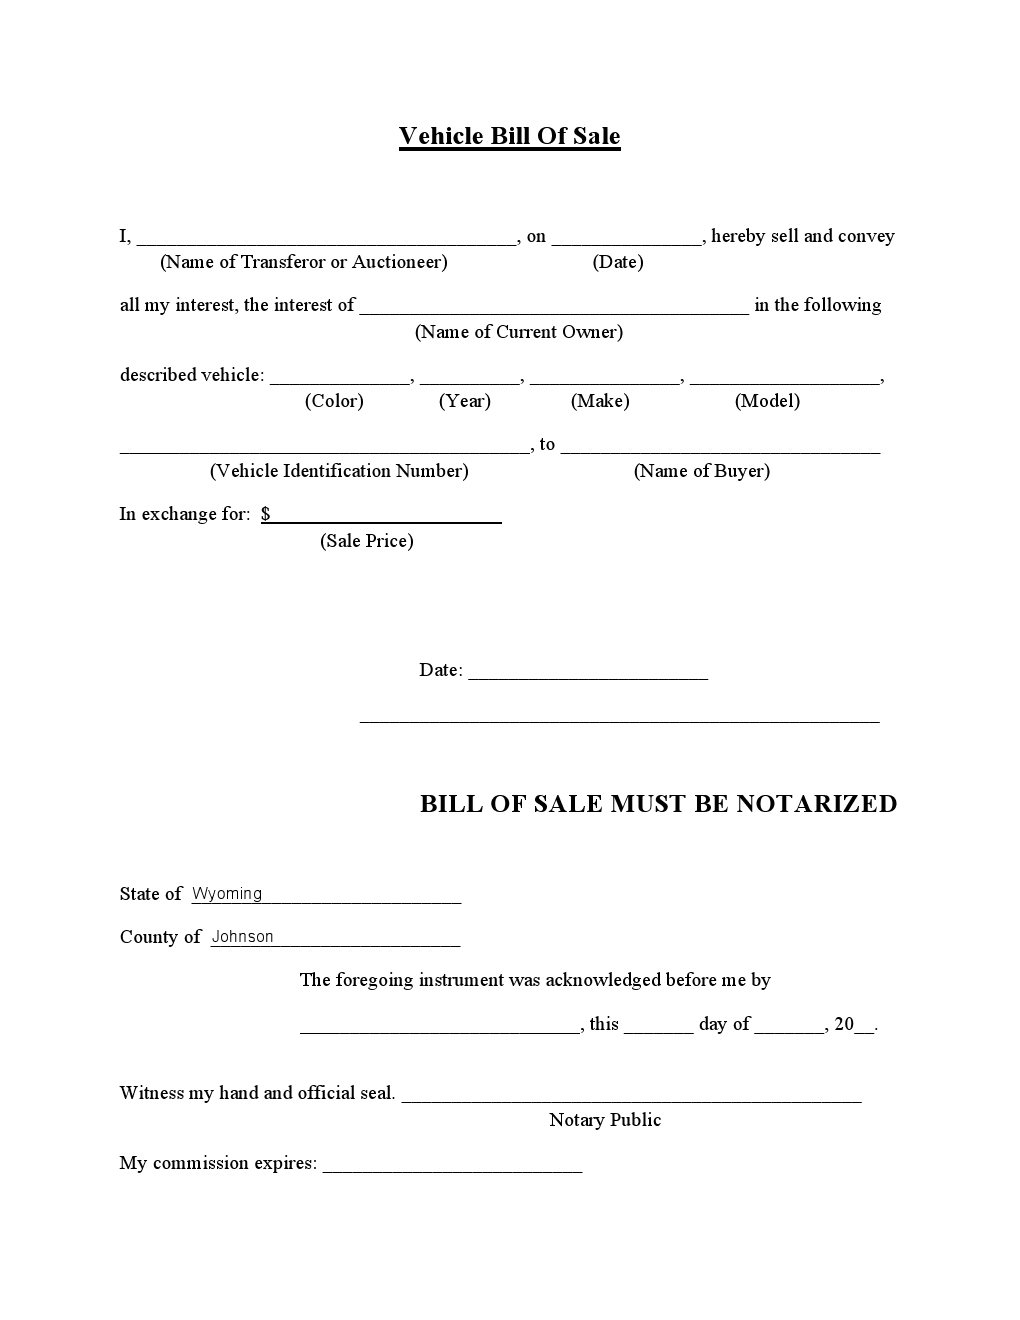 Johnson Country, Vehicle Bill of Sale